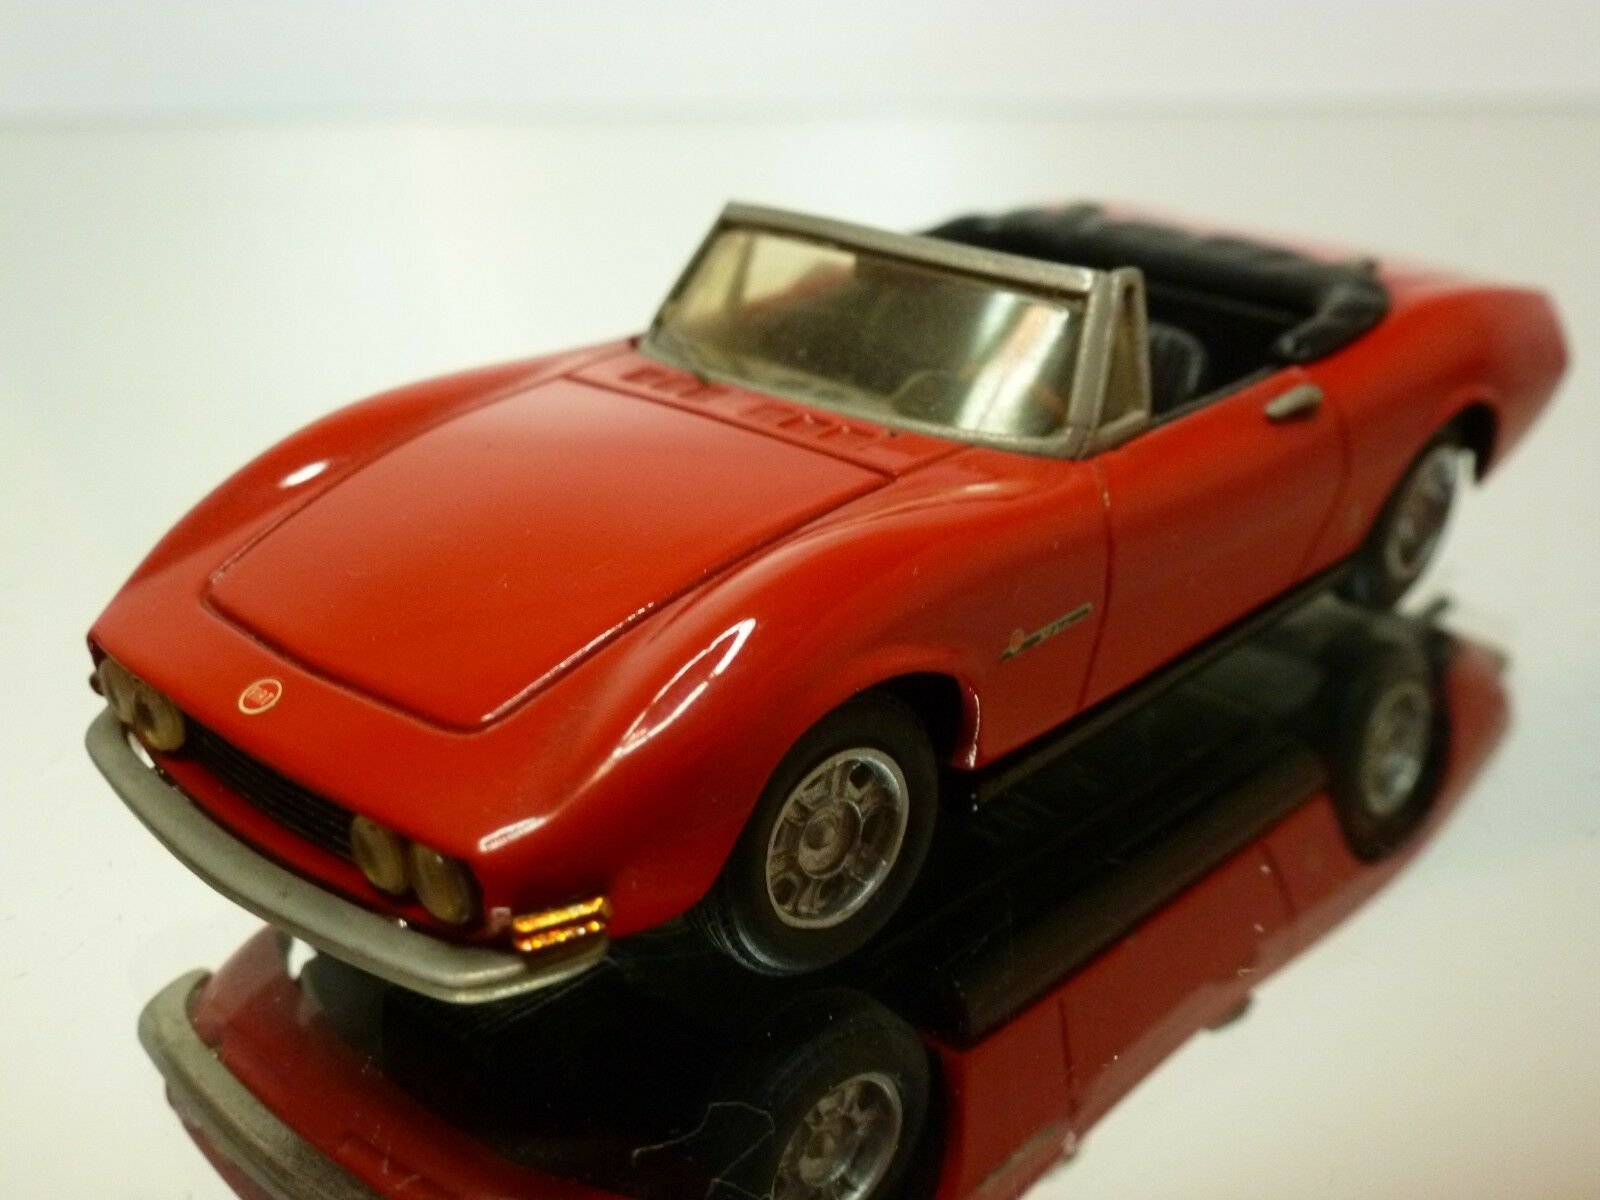 REPLICARS 103 FIAT DINO SPIDER - rouge 1 43 - VERY GOOD CONDITION - 1